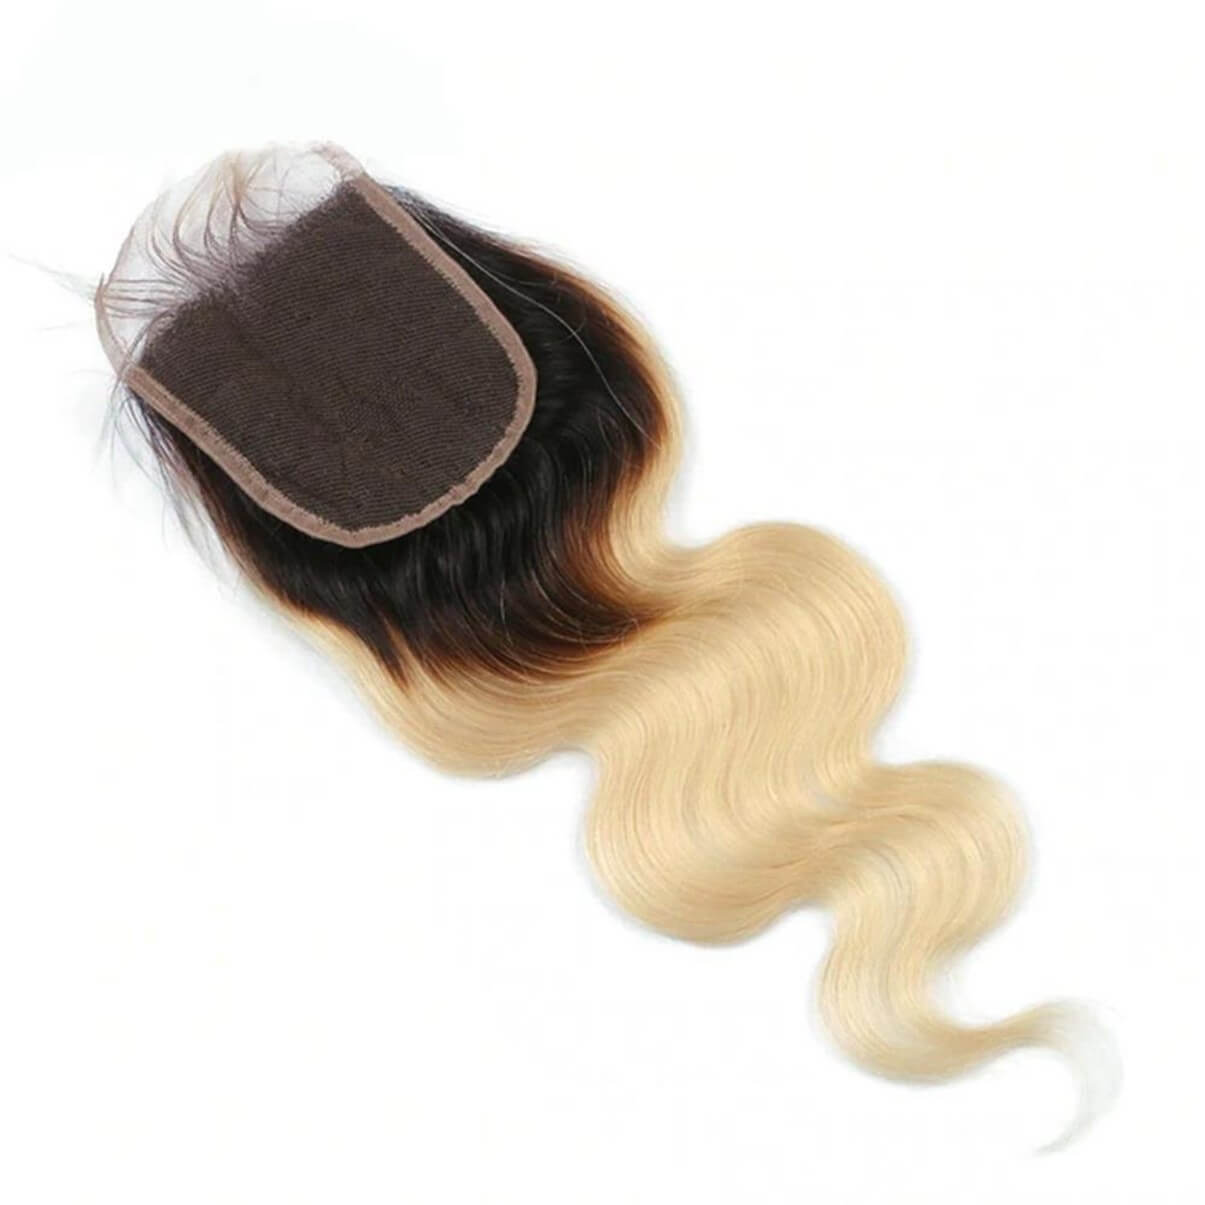 Lakihair 8A 1B/613 Blonde Ombre Body Wave Lace Closure 4x4 Brazilian Virgin Human Hair